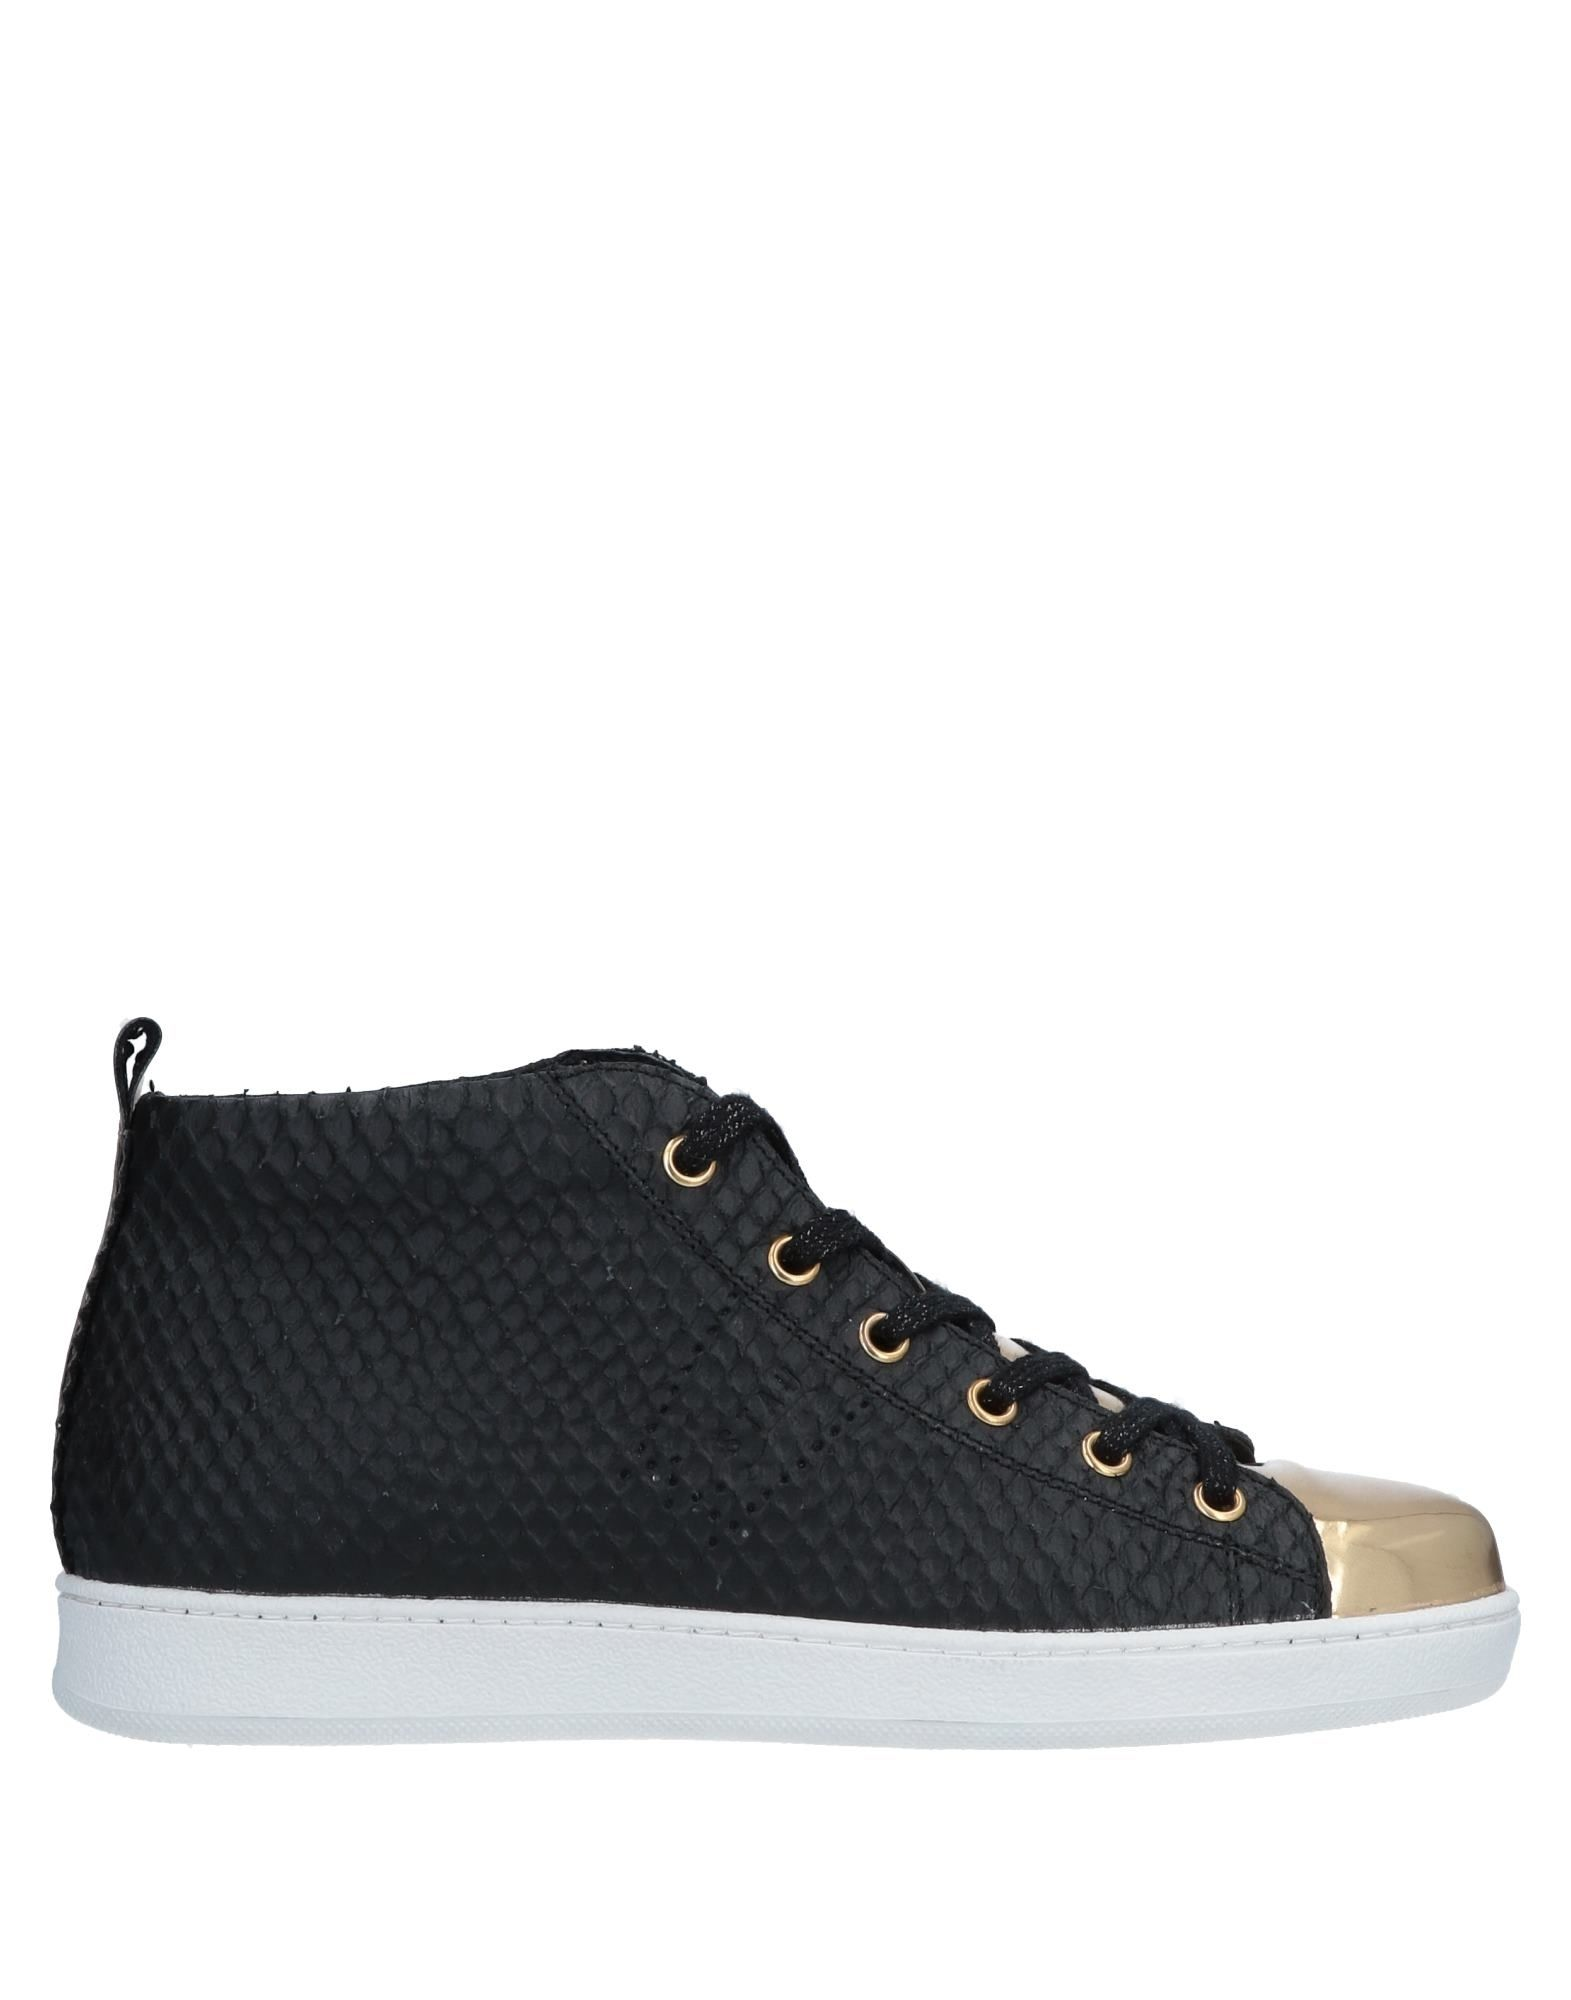 best cheap bec5d 3f3d1 STAU Sneakers - Footwear | YOOX.COM